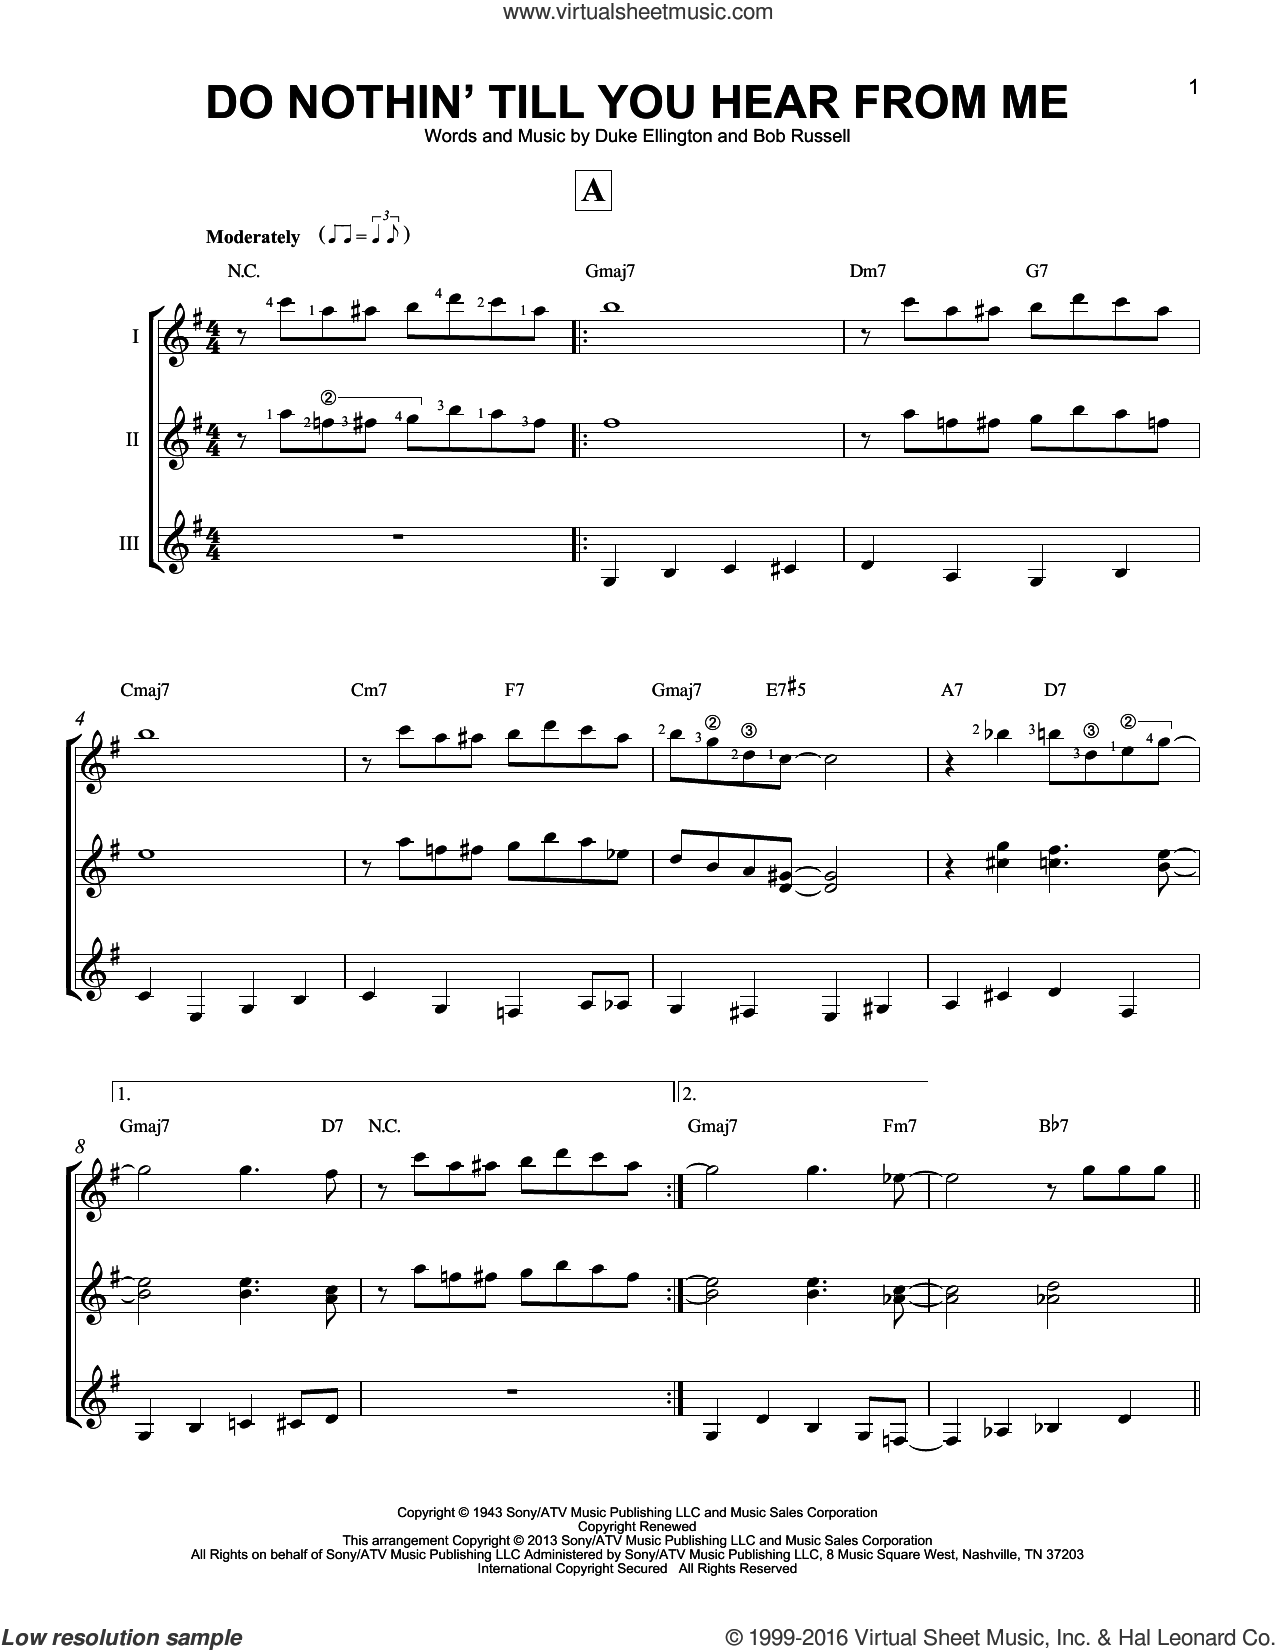 Do Nothin' Till You Hear From Me sheet music for guitar ensemble by Duke Ellington and Bob Russell, intermediate skill level